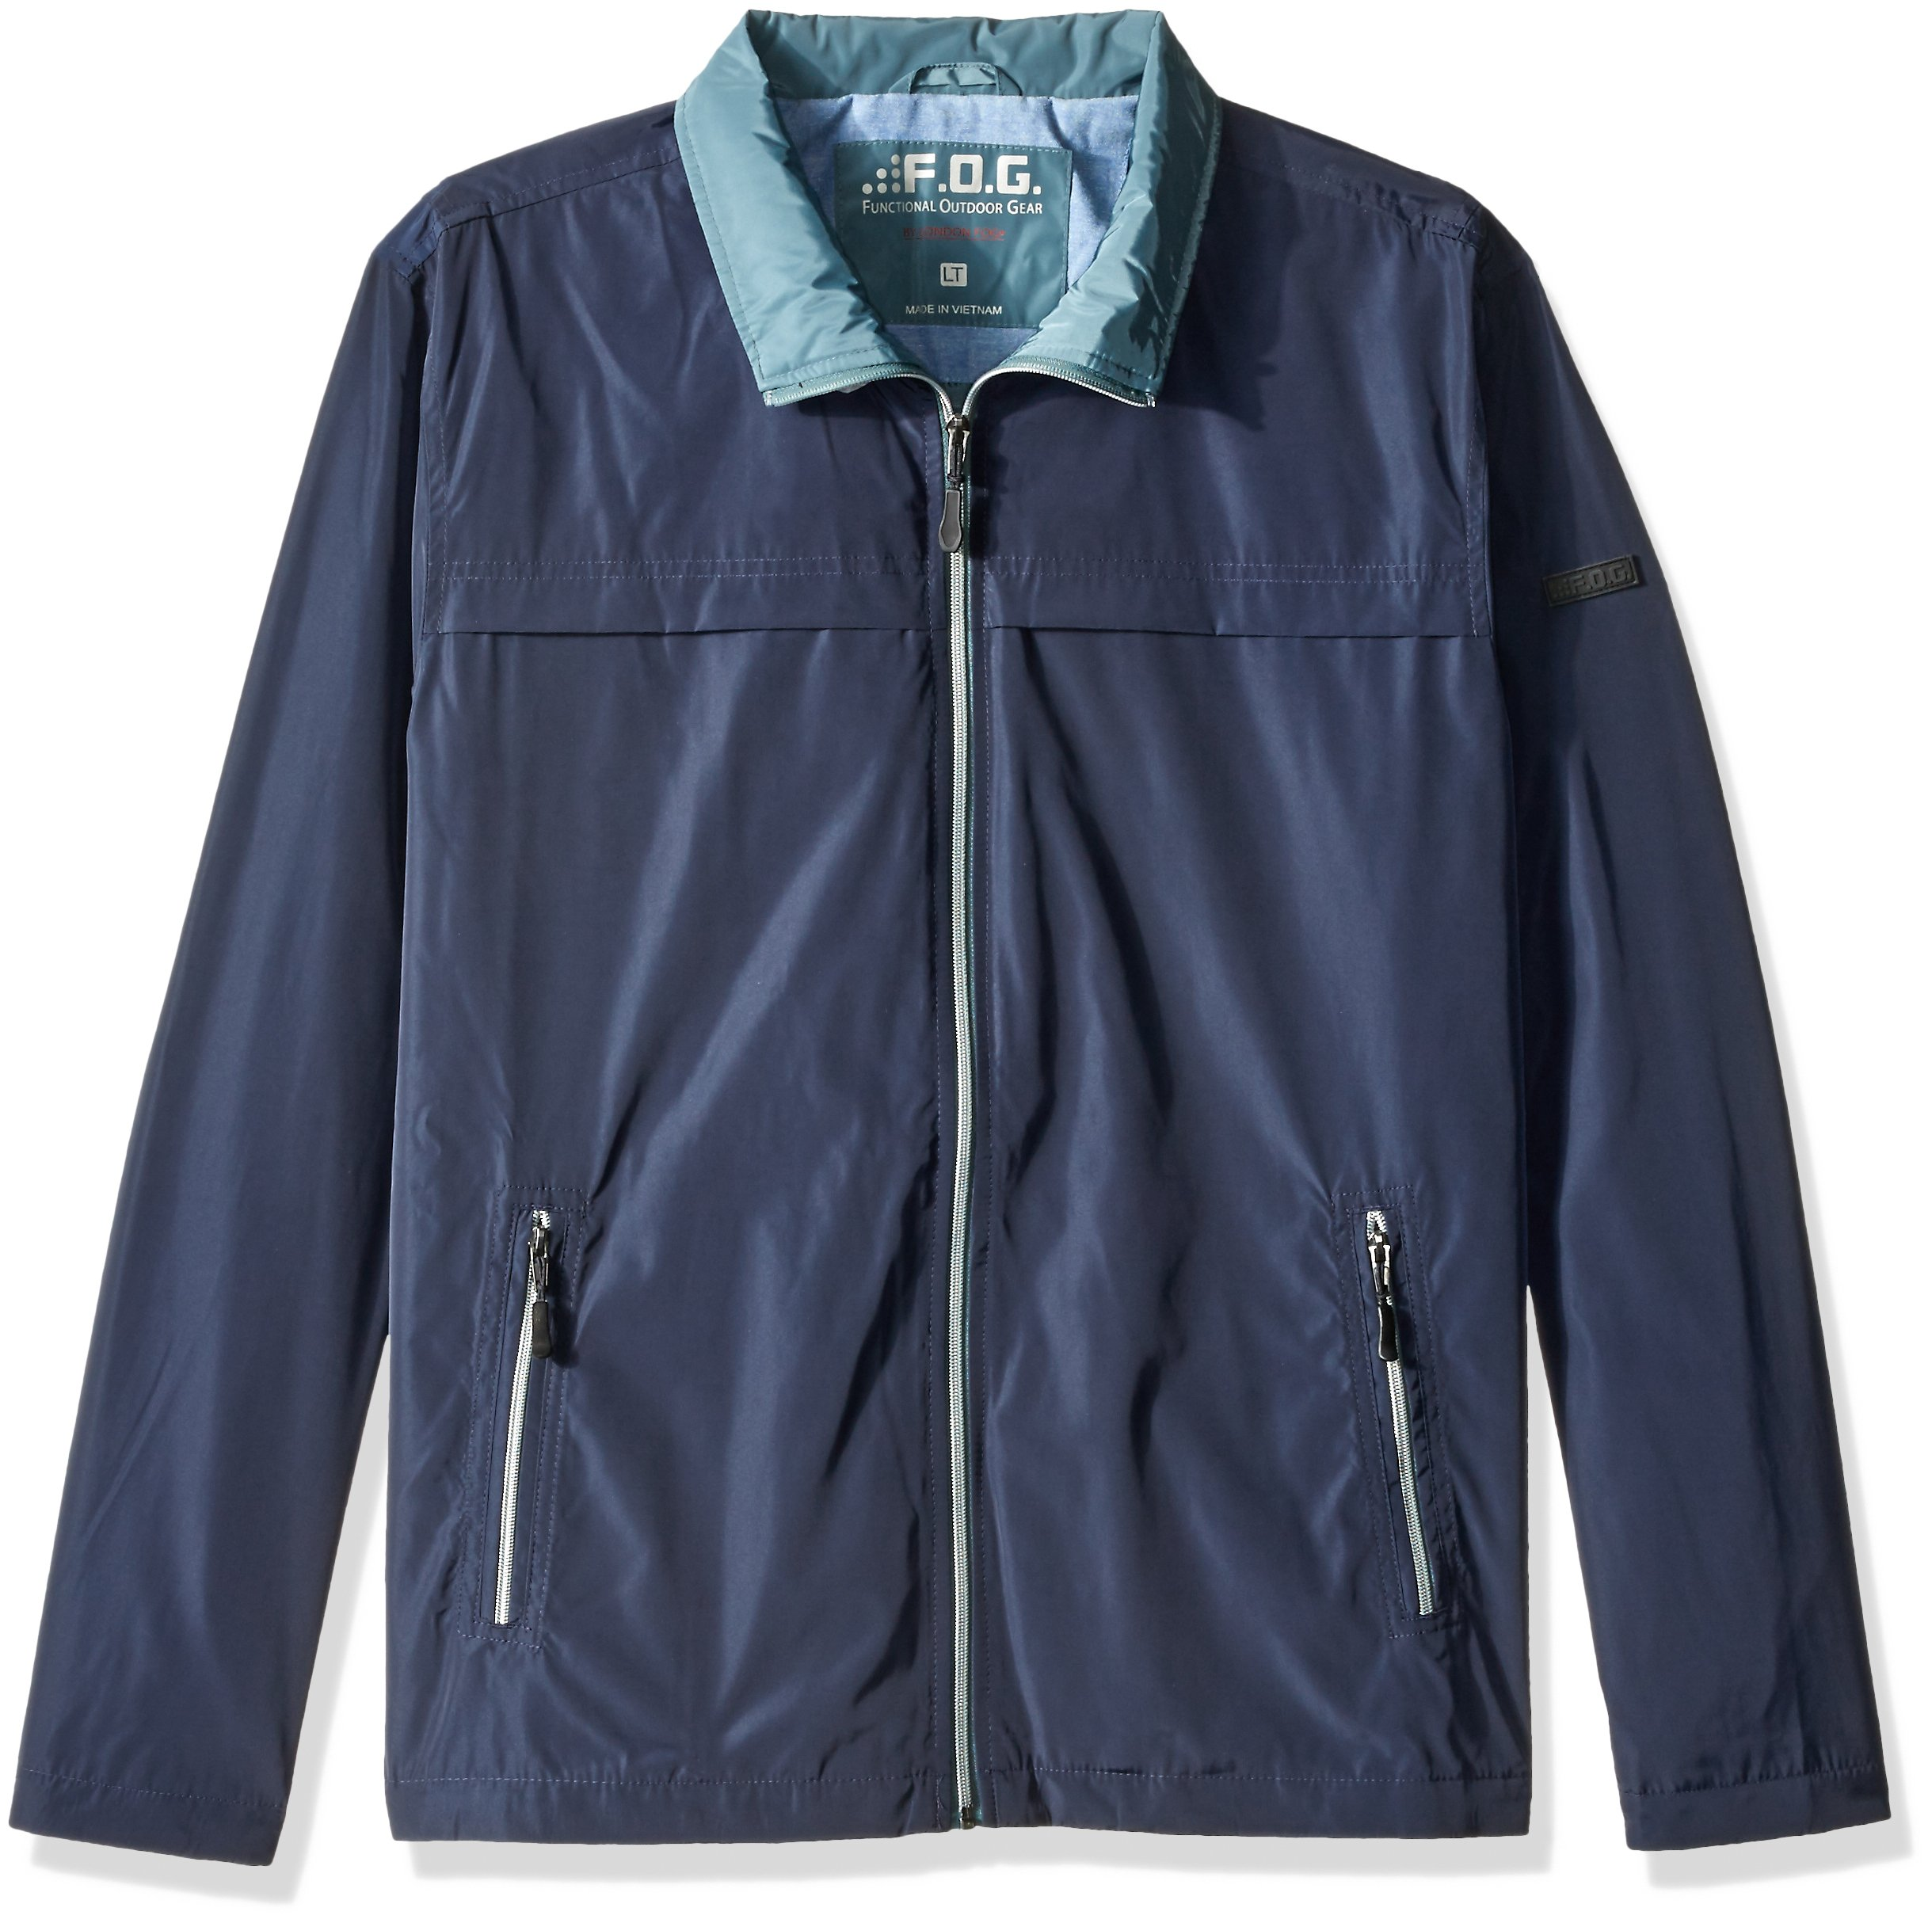 F.O.G. Fog Men's Size Packable Performance Jacket, New Navy/Teal, 2X Tall